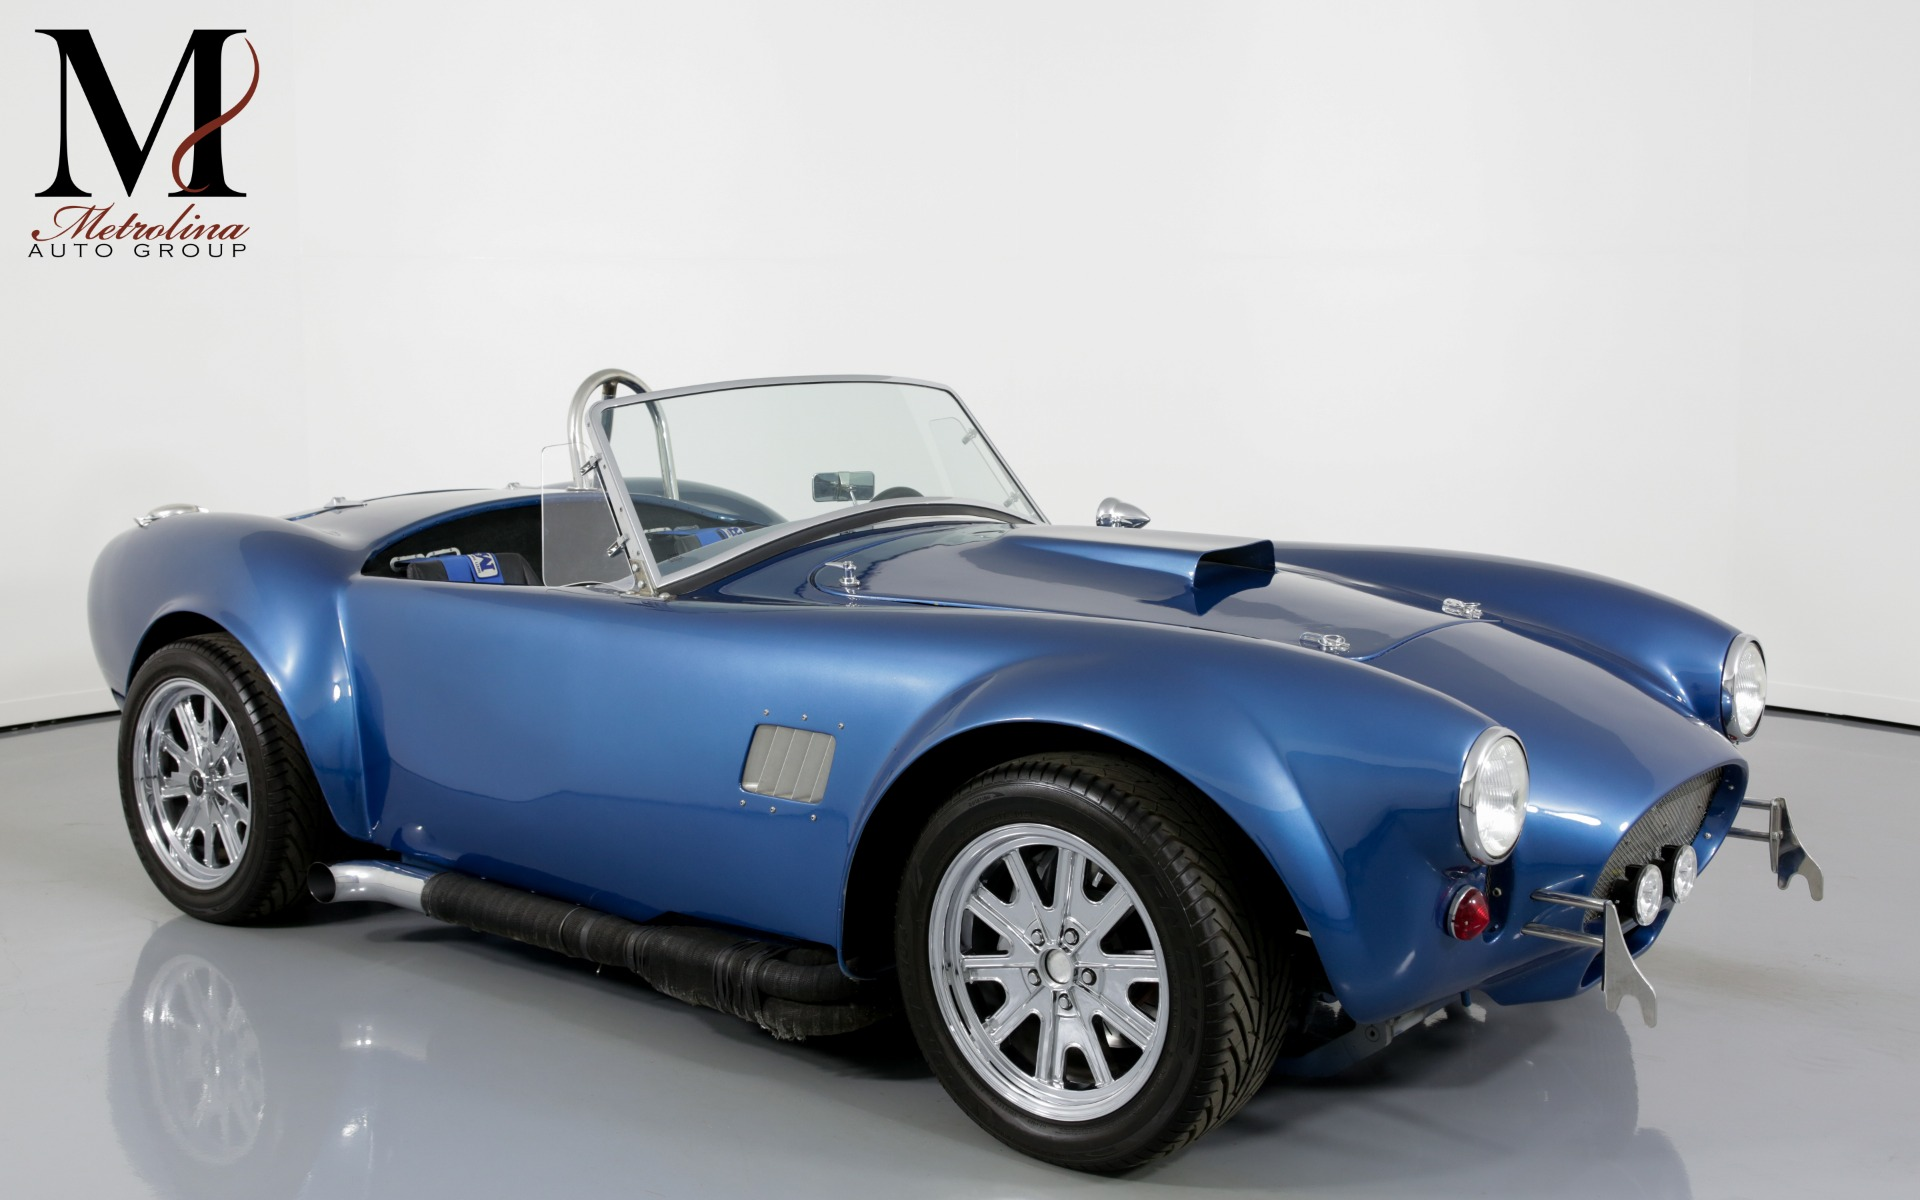 Used 1965 Shelby Cobra KIT CAR for sale Sold at Metrolina Auto Group in Charlotte NC 28217 - 1